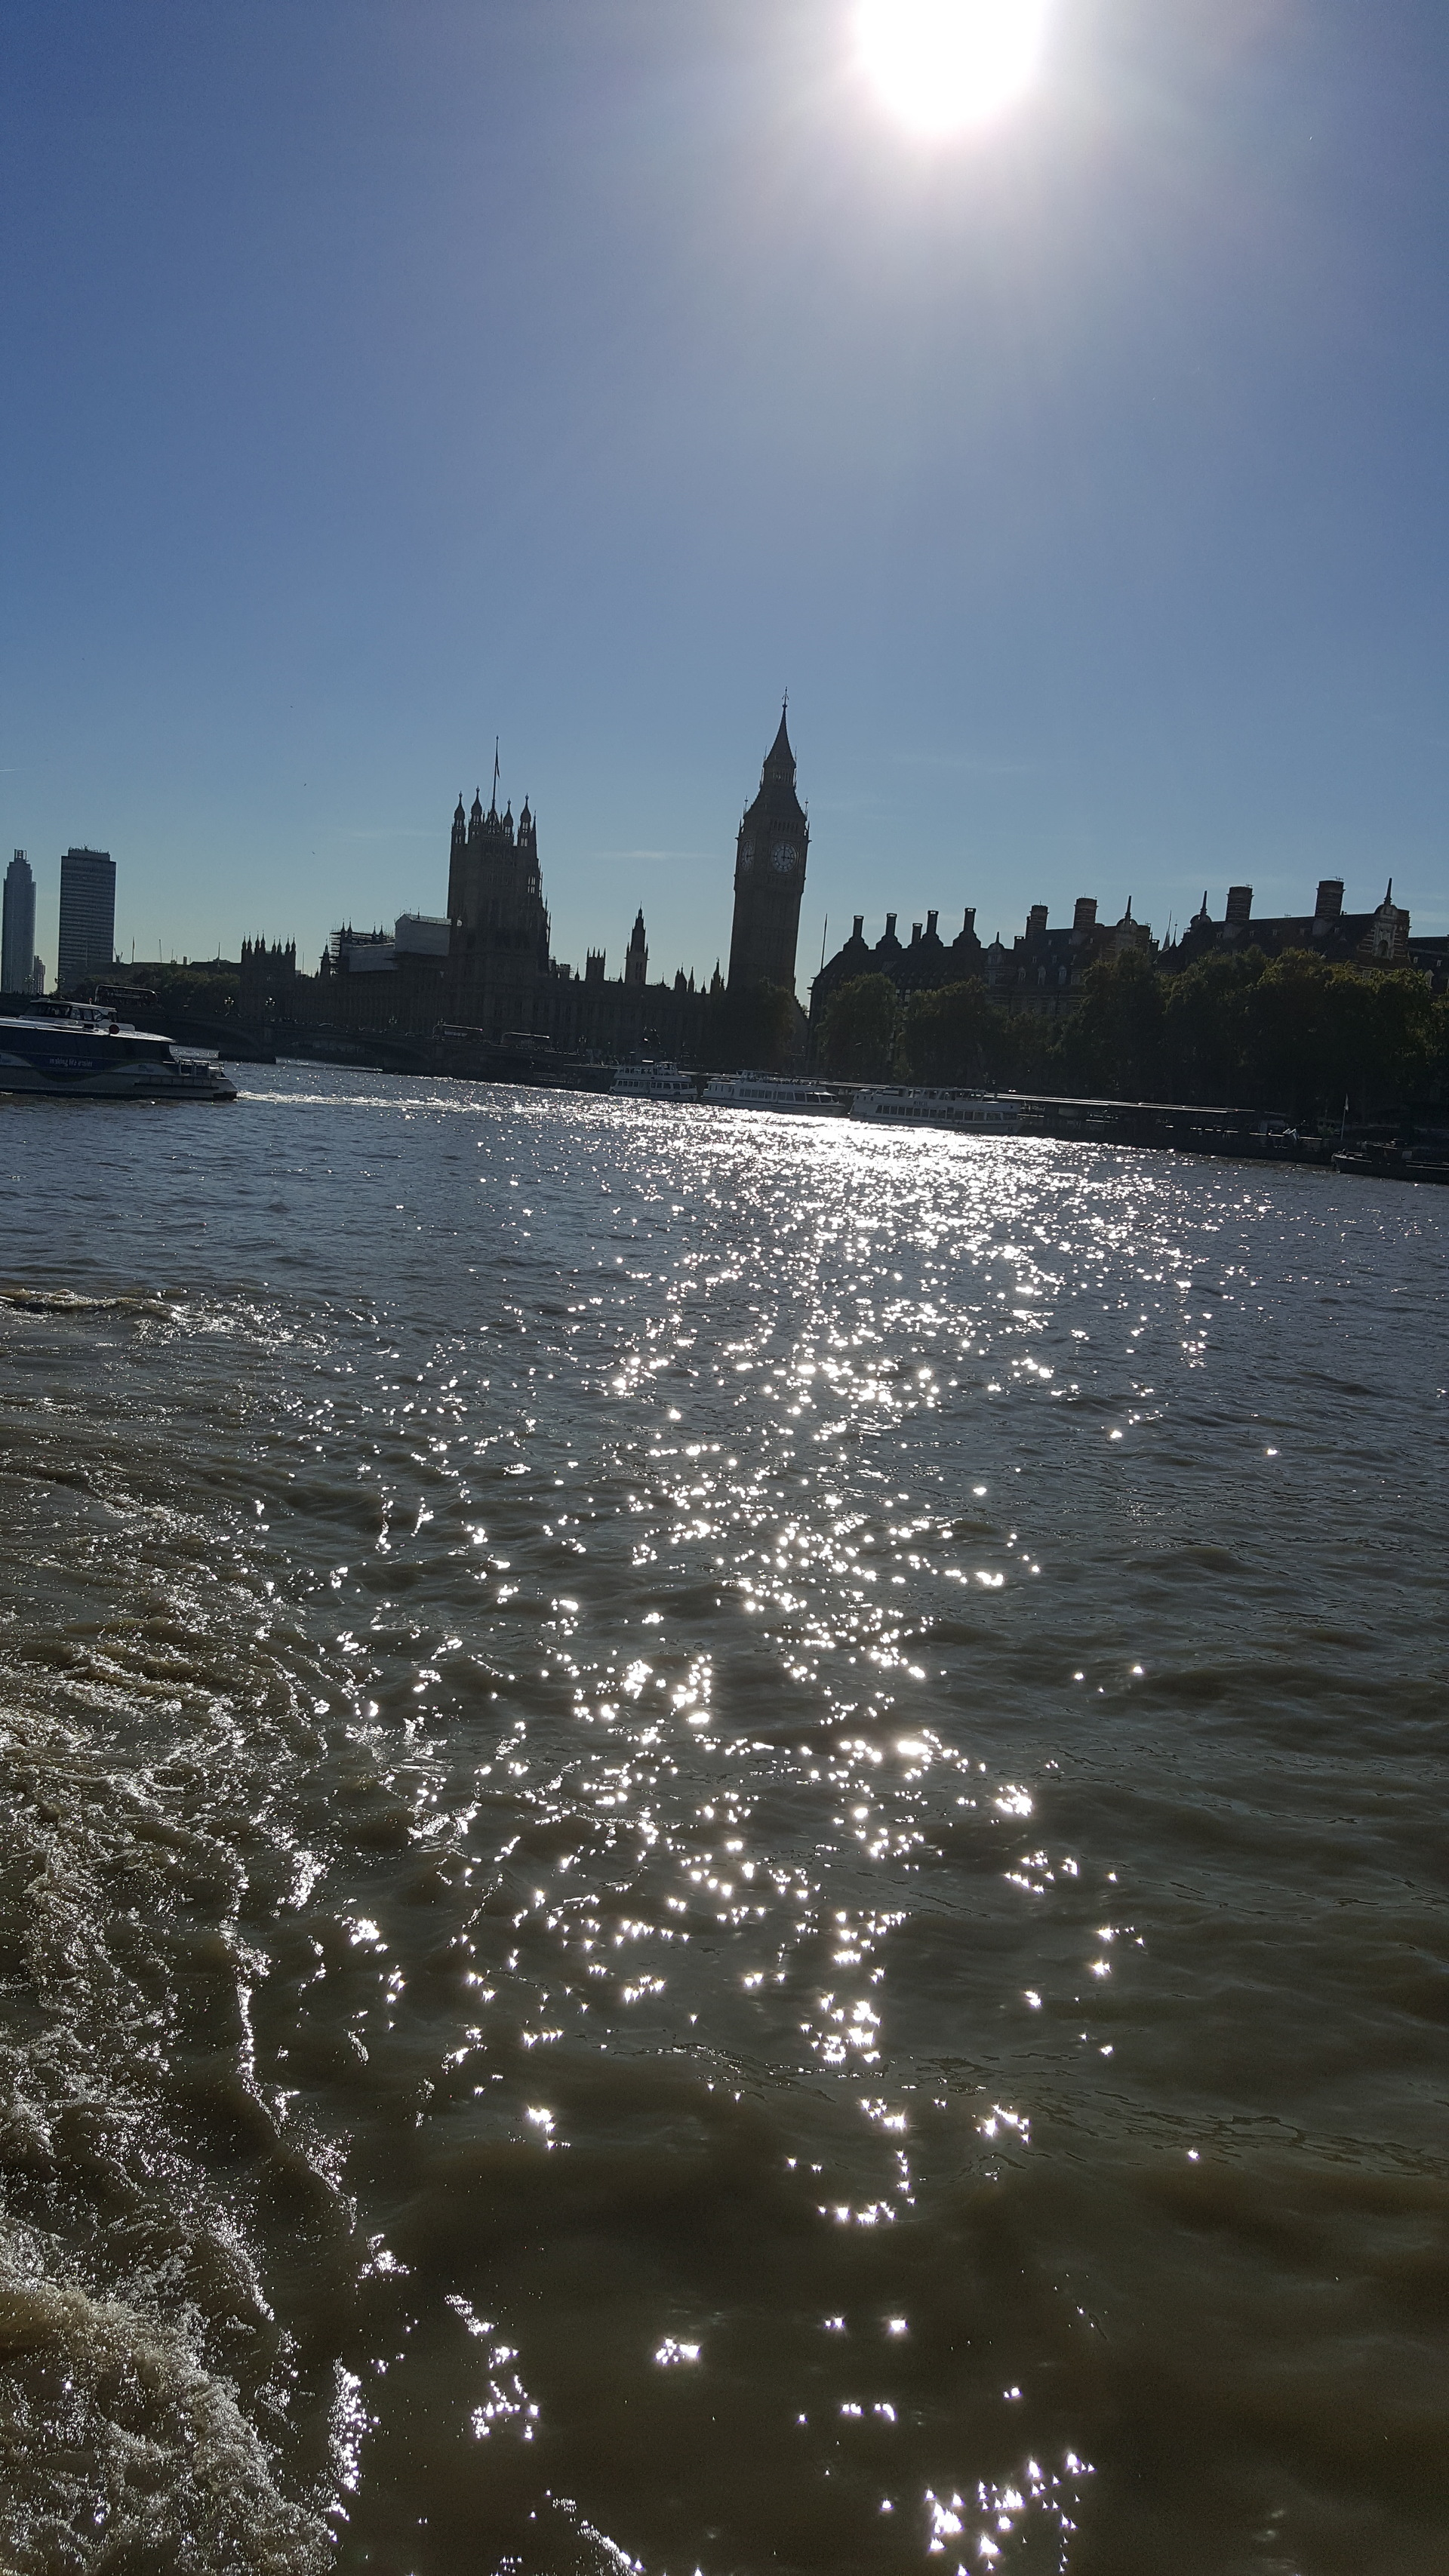 Parliament on the river Thames